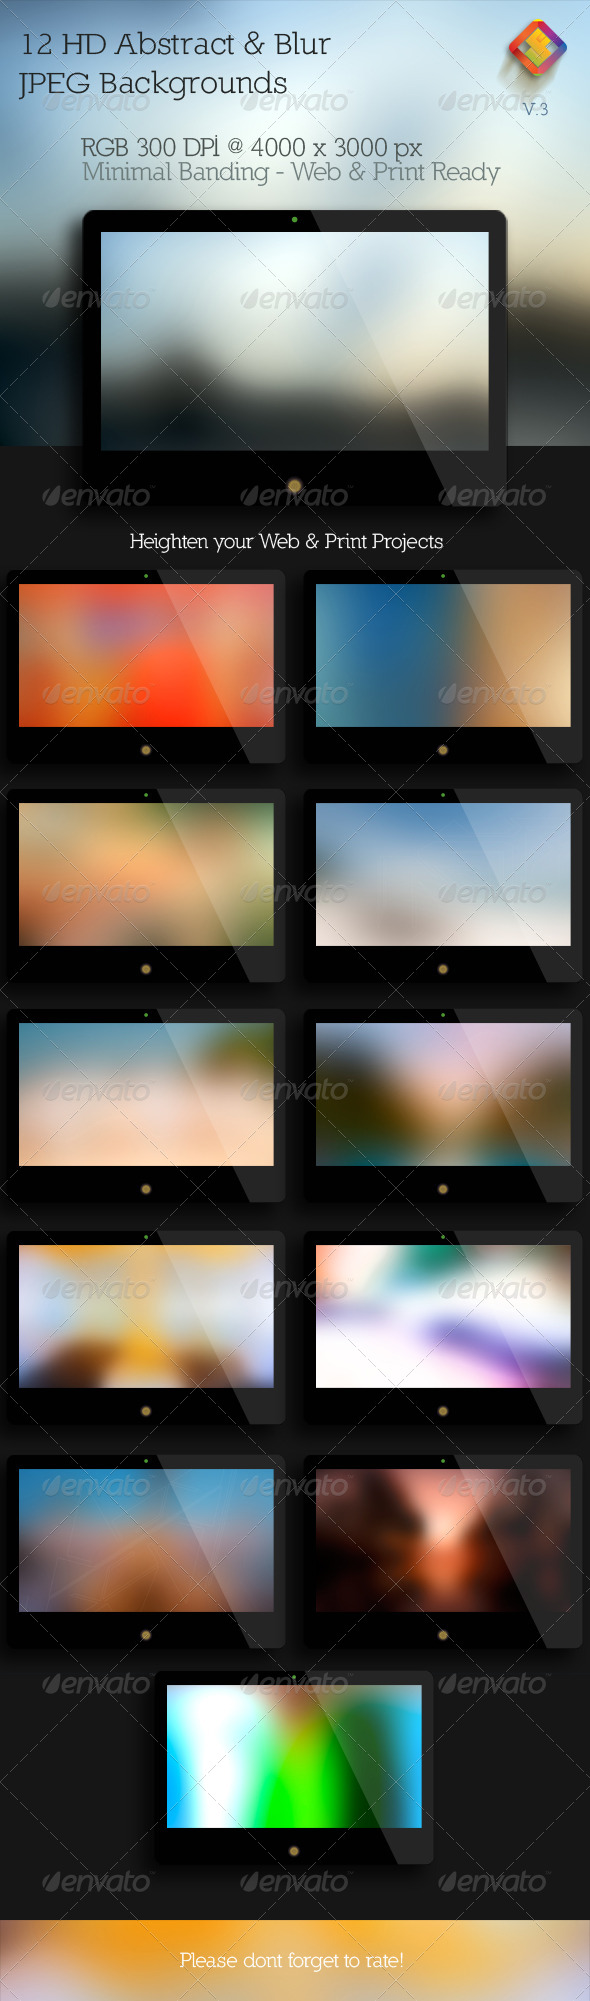 Abstract & Blur Backgrounds V.3